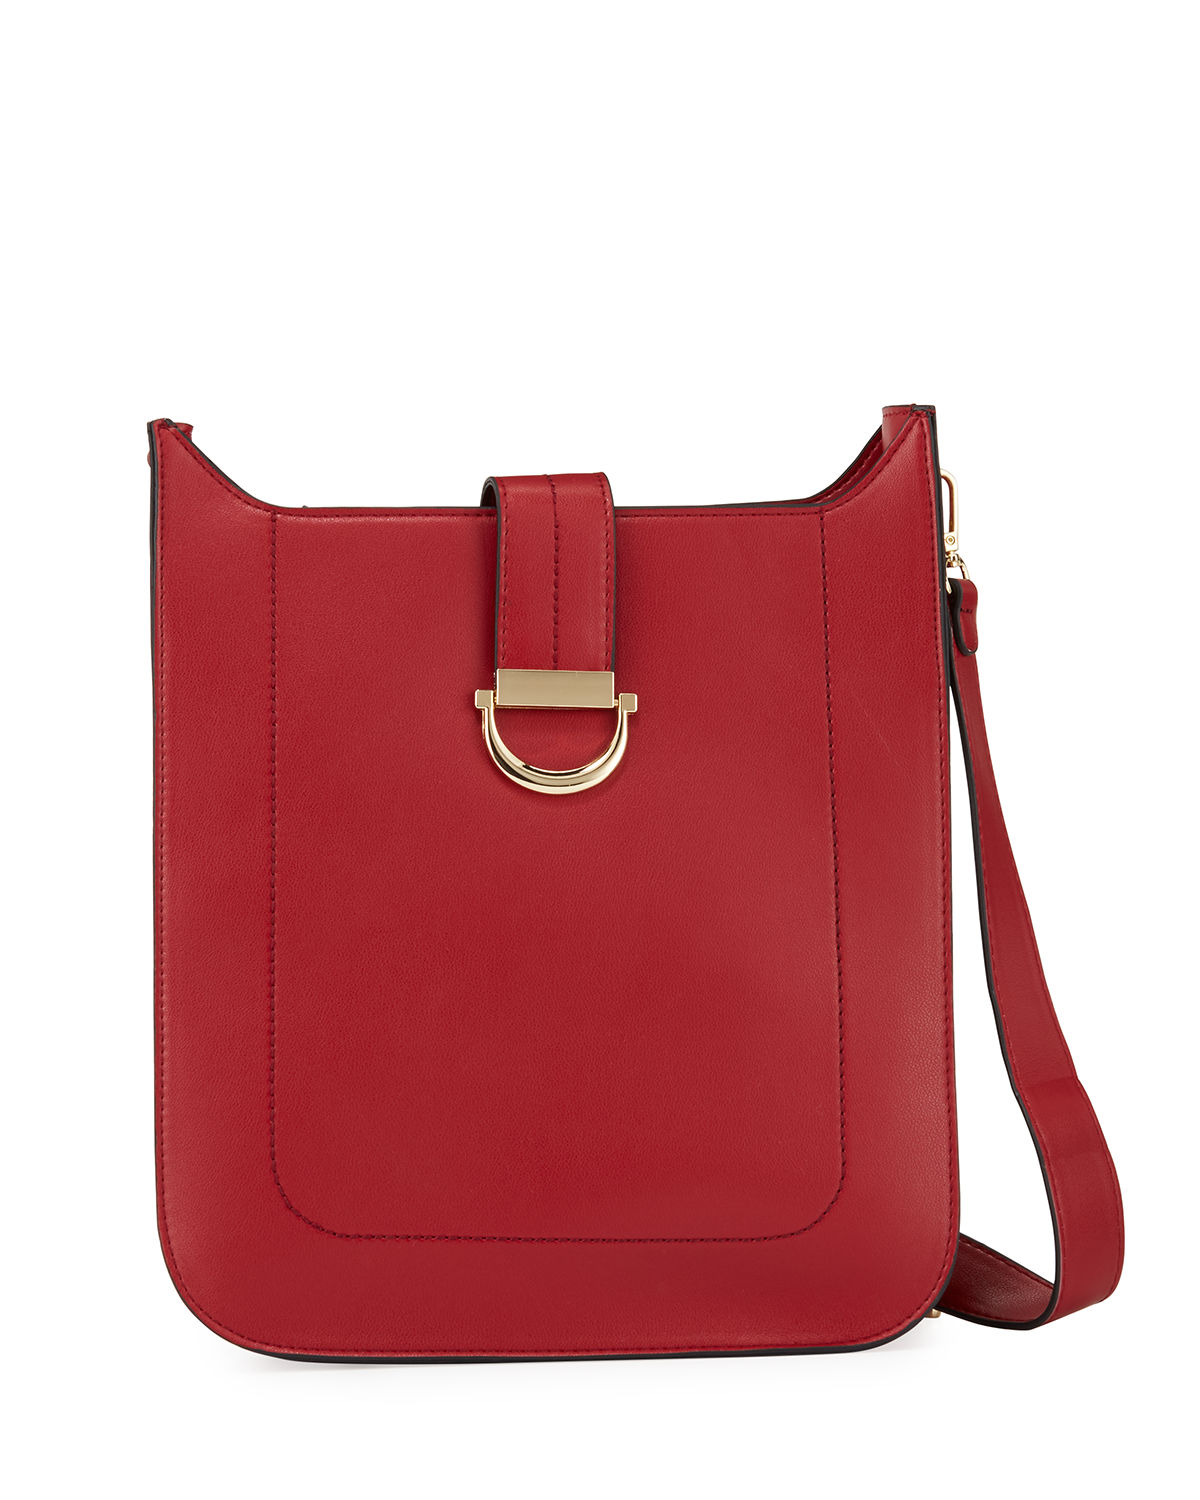 Neiman Marcus Crossbody SCOUT FAUX-LEATHER CROSSBODY BAG